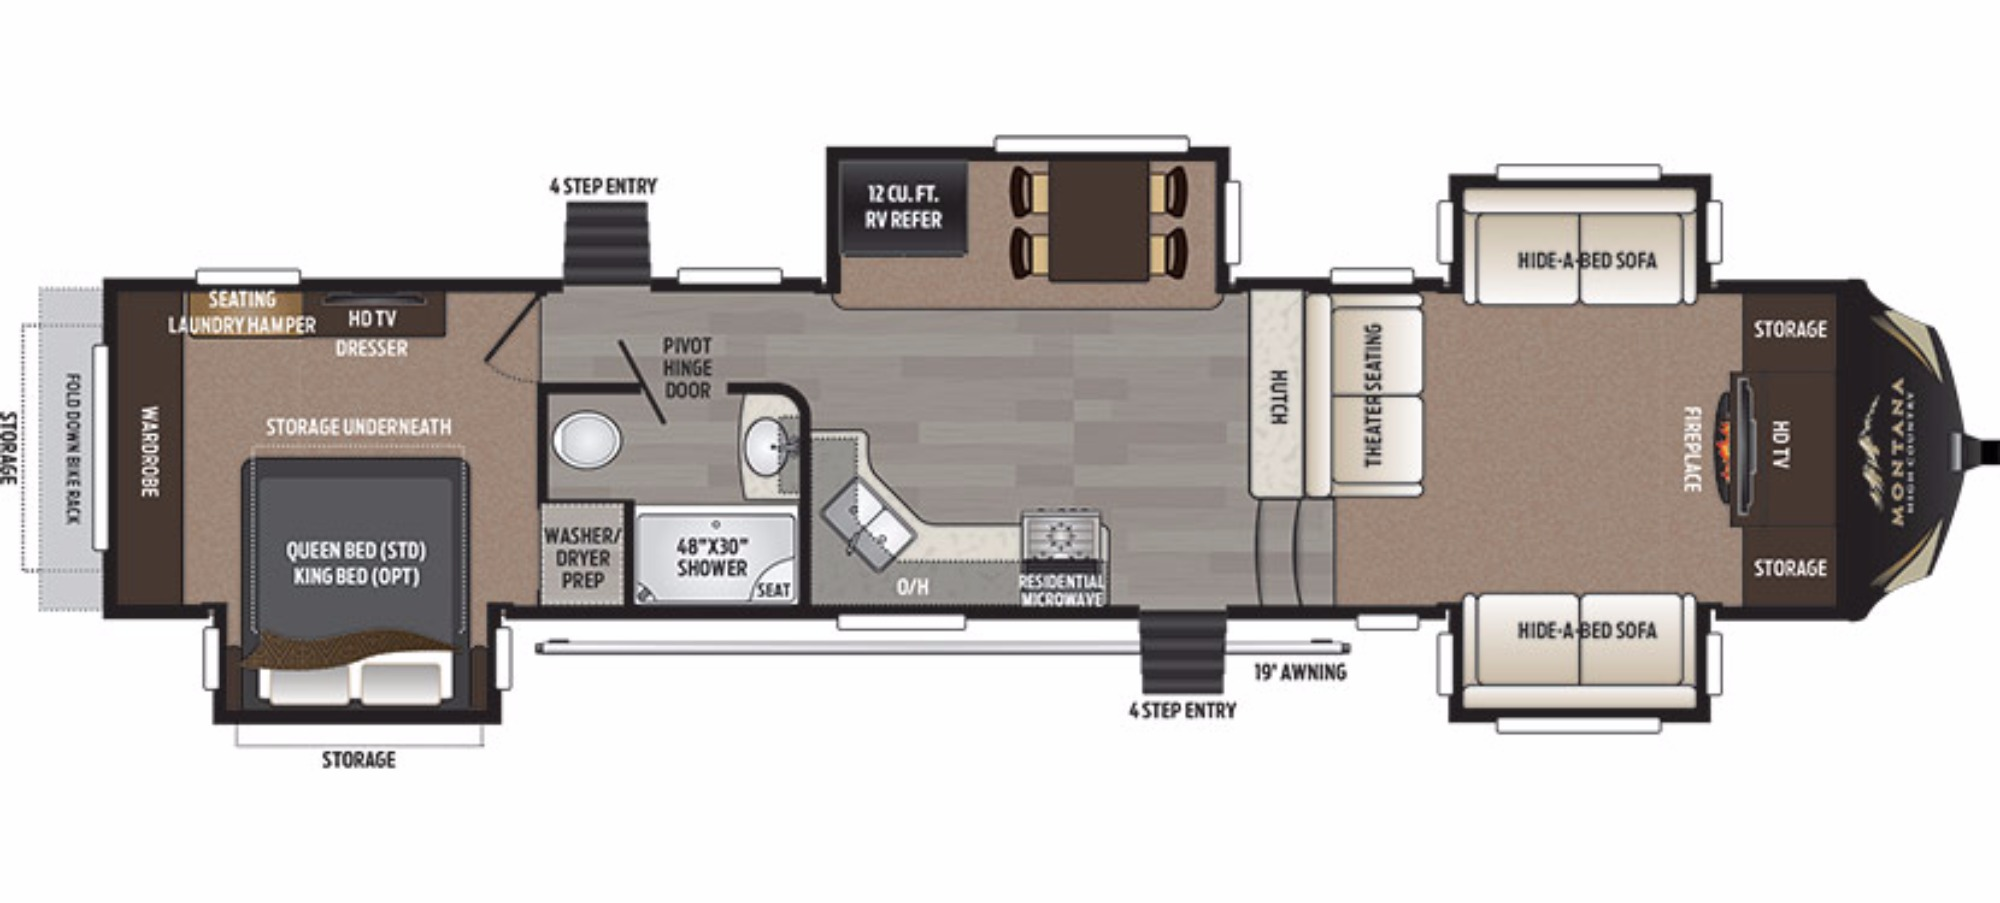 montana 5th wheel floor plans images 327res floor plan 5th montana high country s2939 4 in addition jayco eagle fifth floor plans